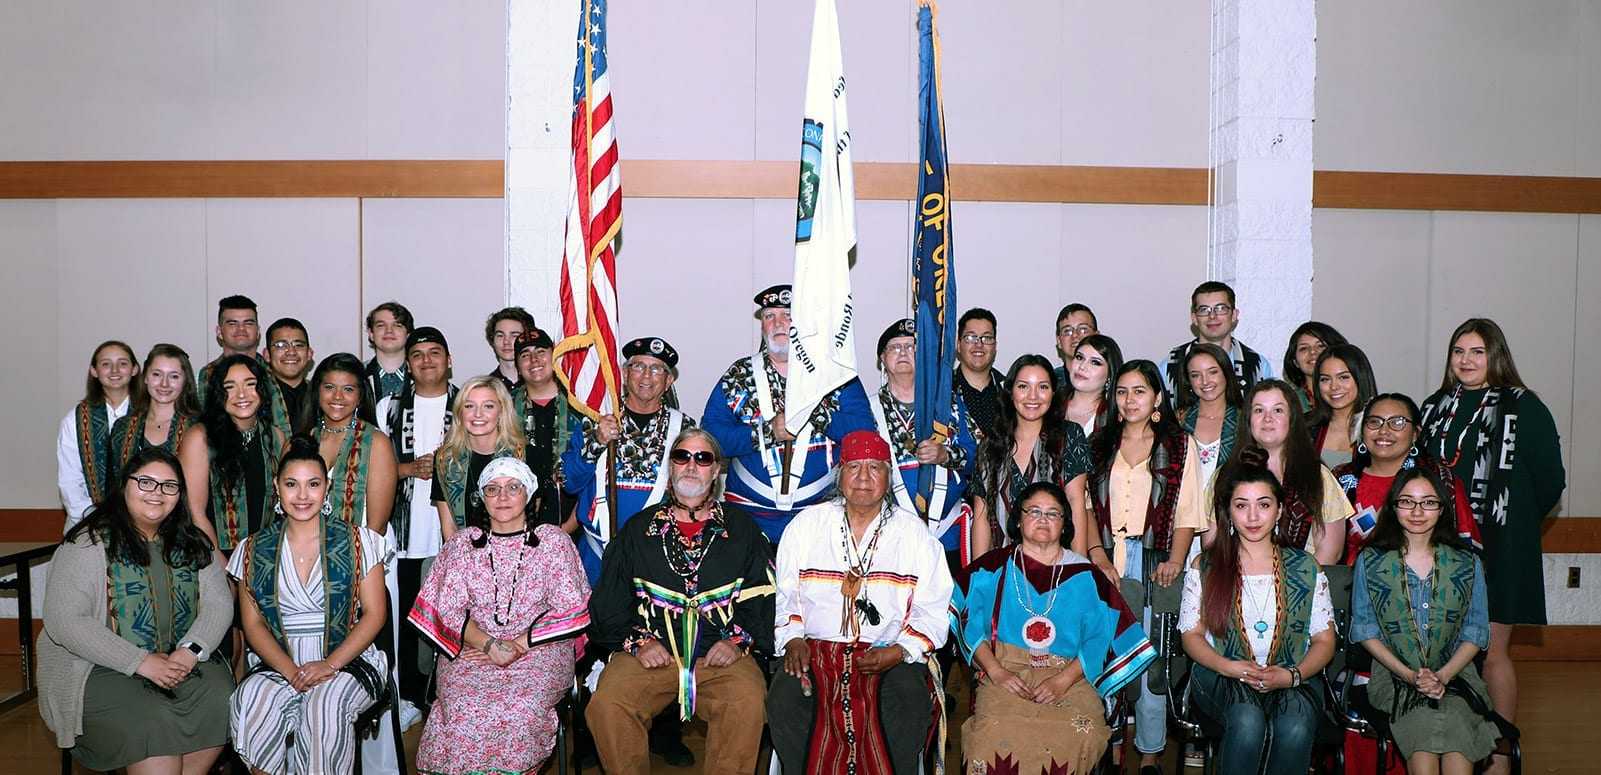 Group shot of many tribal elders and youth together